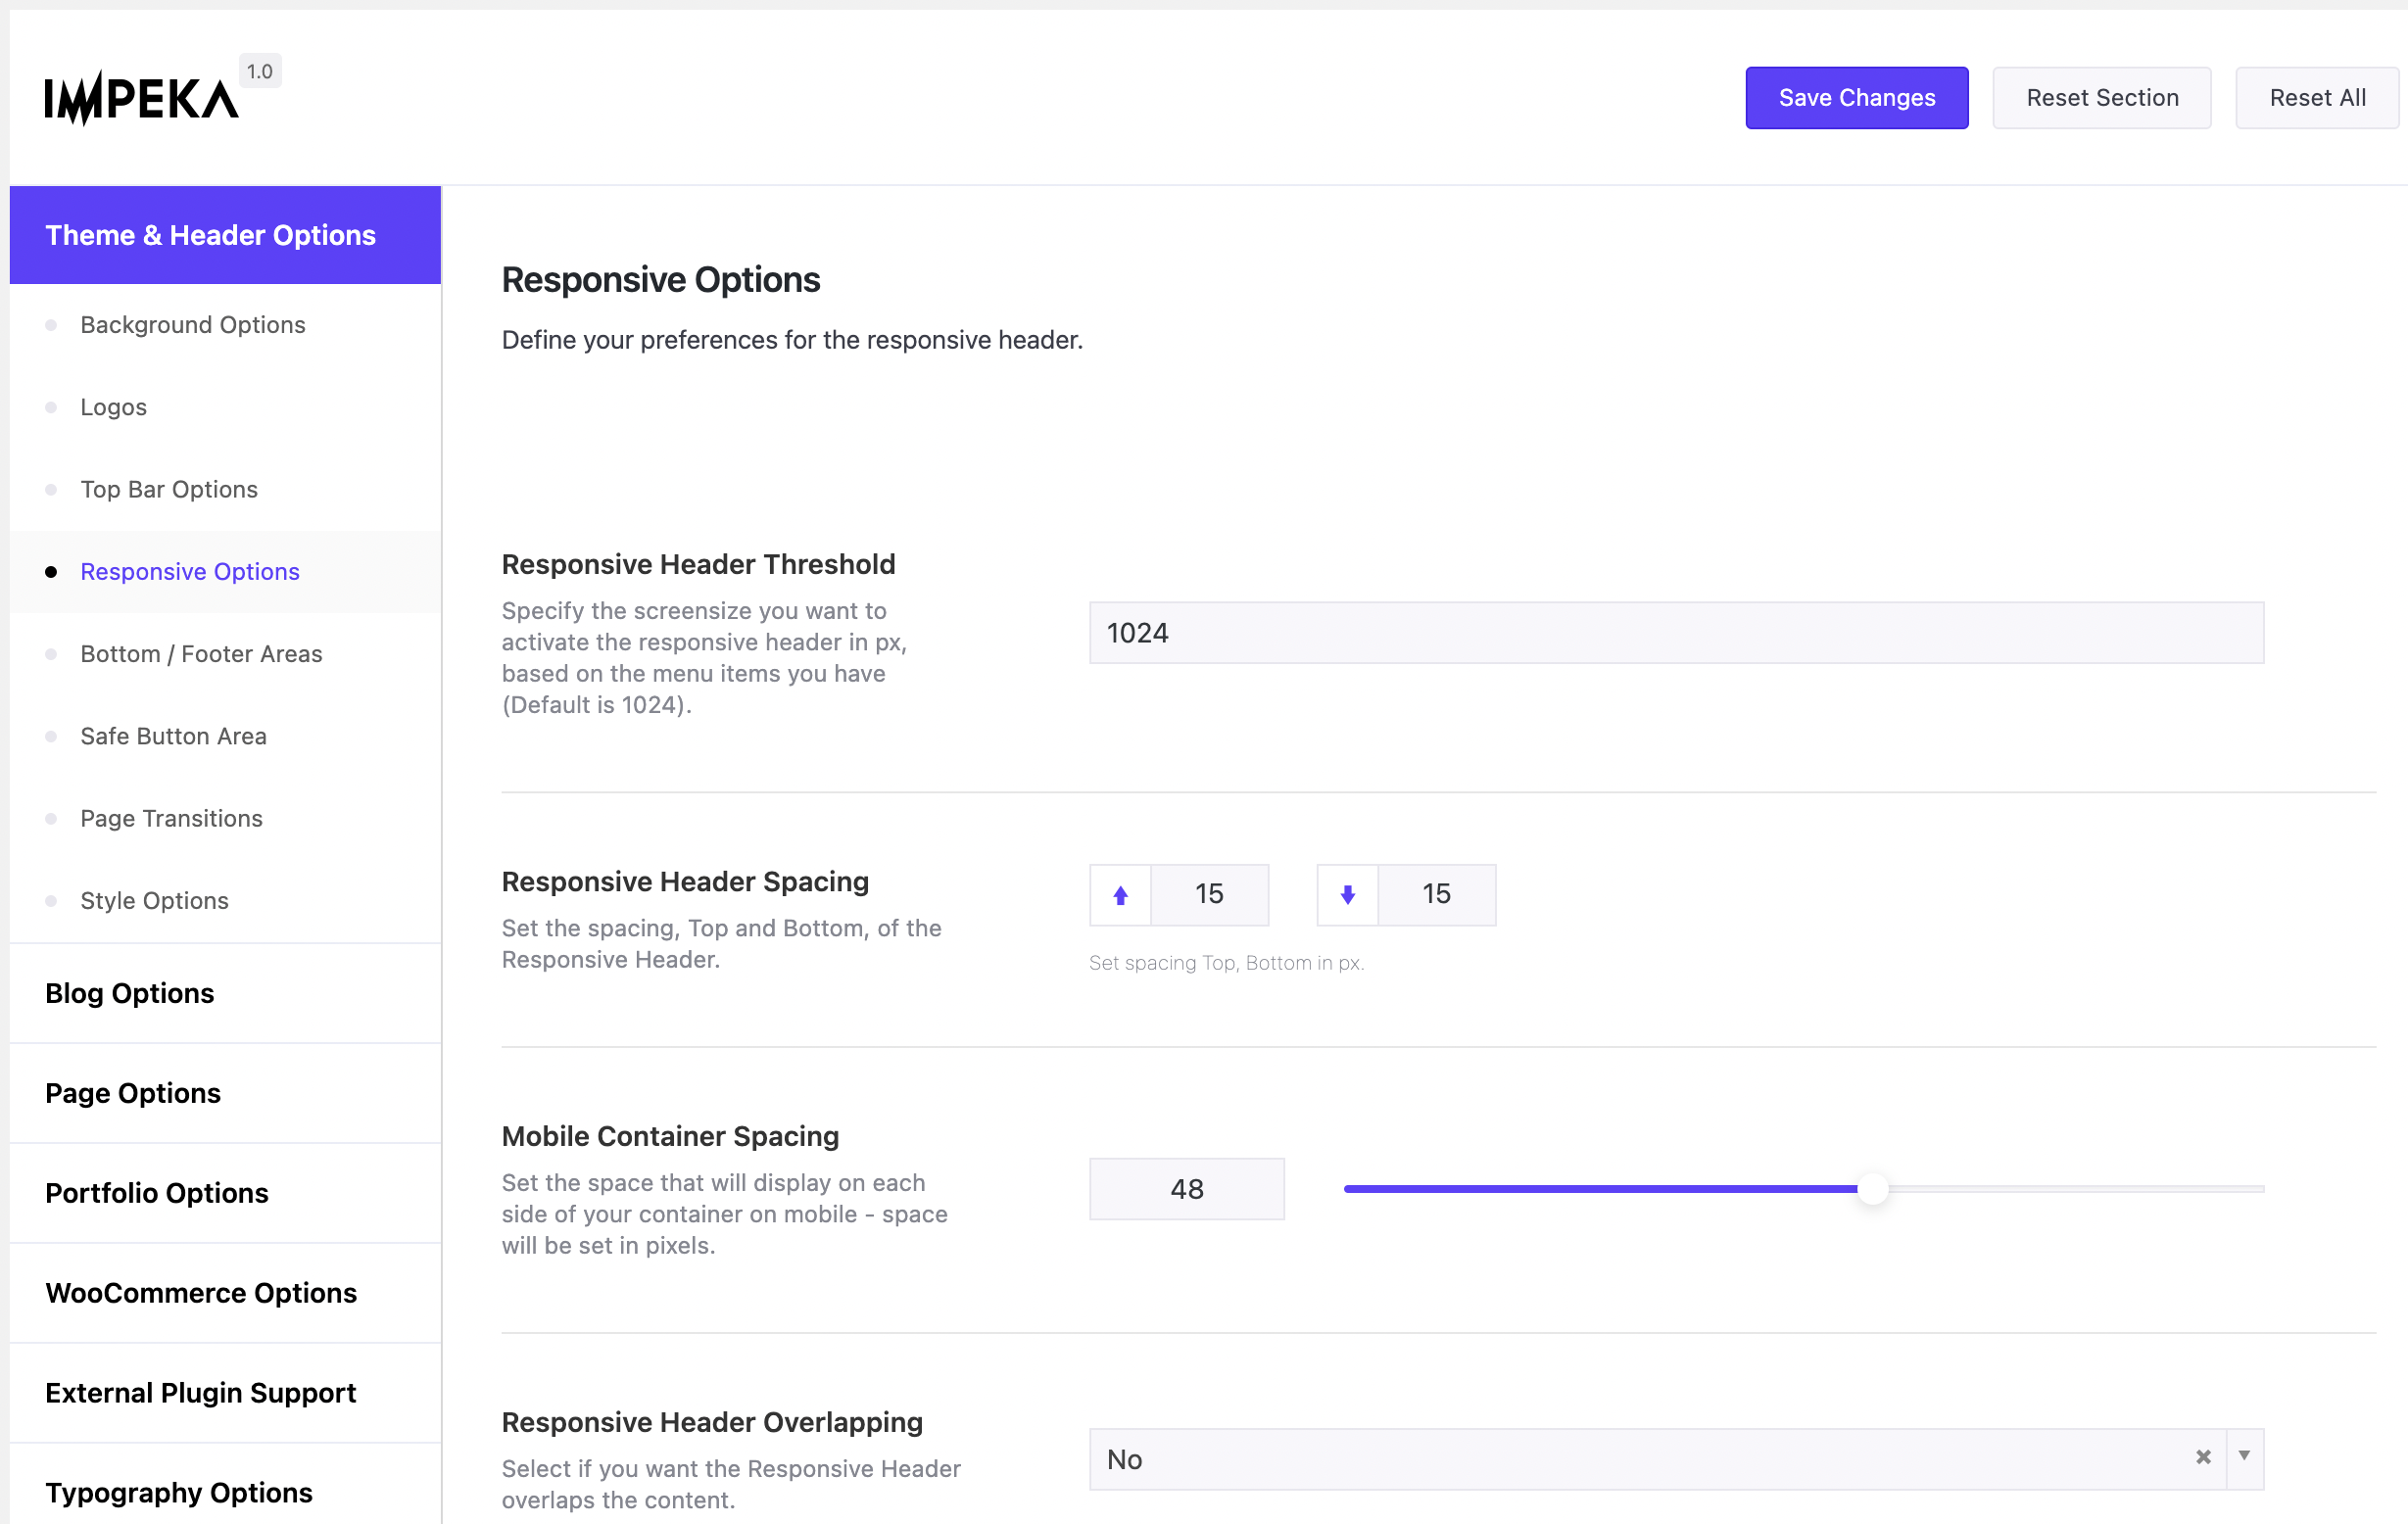 Responsive Header Options in Impeka